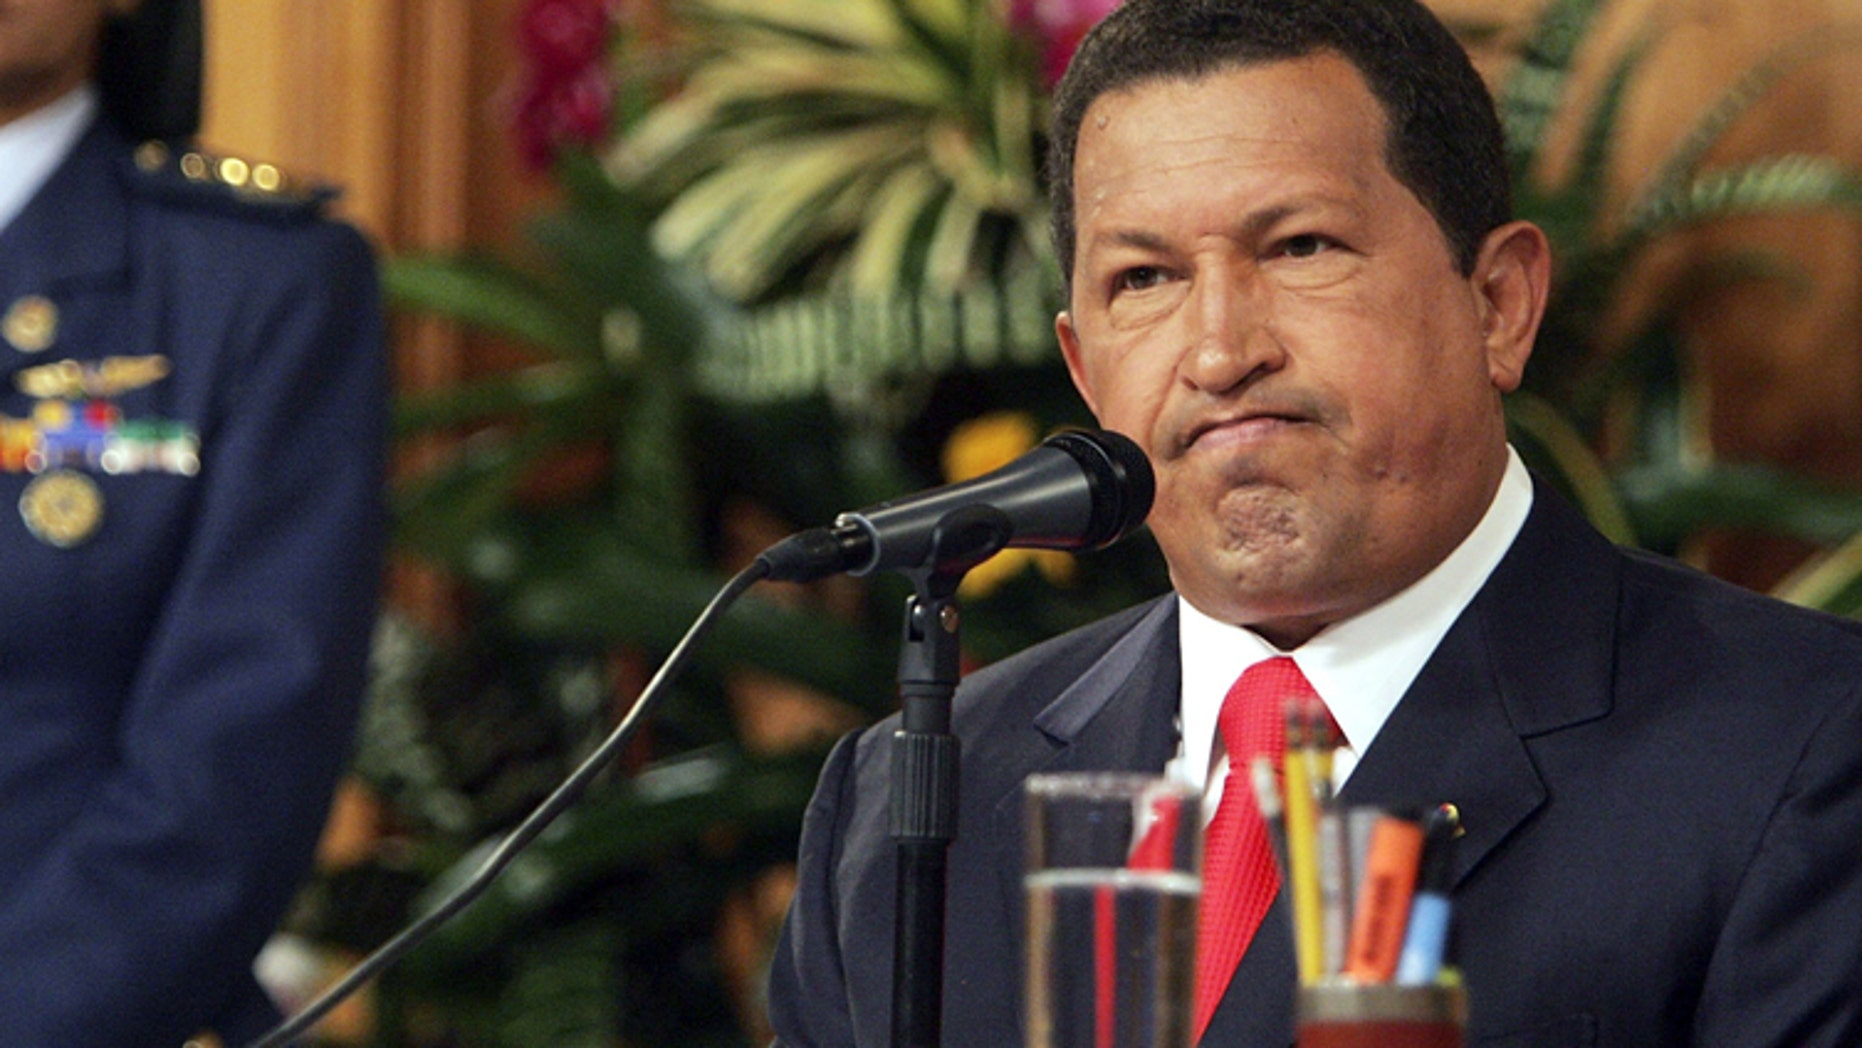 CARACAS, VENEZUELA - NOVEMBER 30:  President Hugo Chavez speaks at a press conference in Miraflores Palace November 30, 2006 in Caracas, Venezuela. Chavez faces off against challenger Manuel Rosales in the presidential election December 3.  (Photo by Mario Tama/Getty Images)